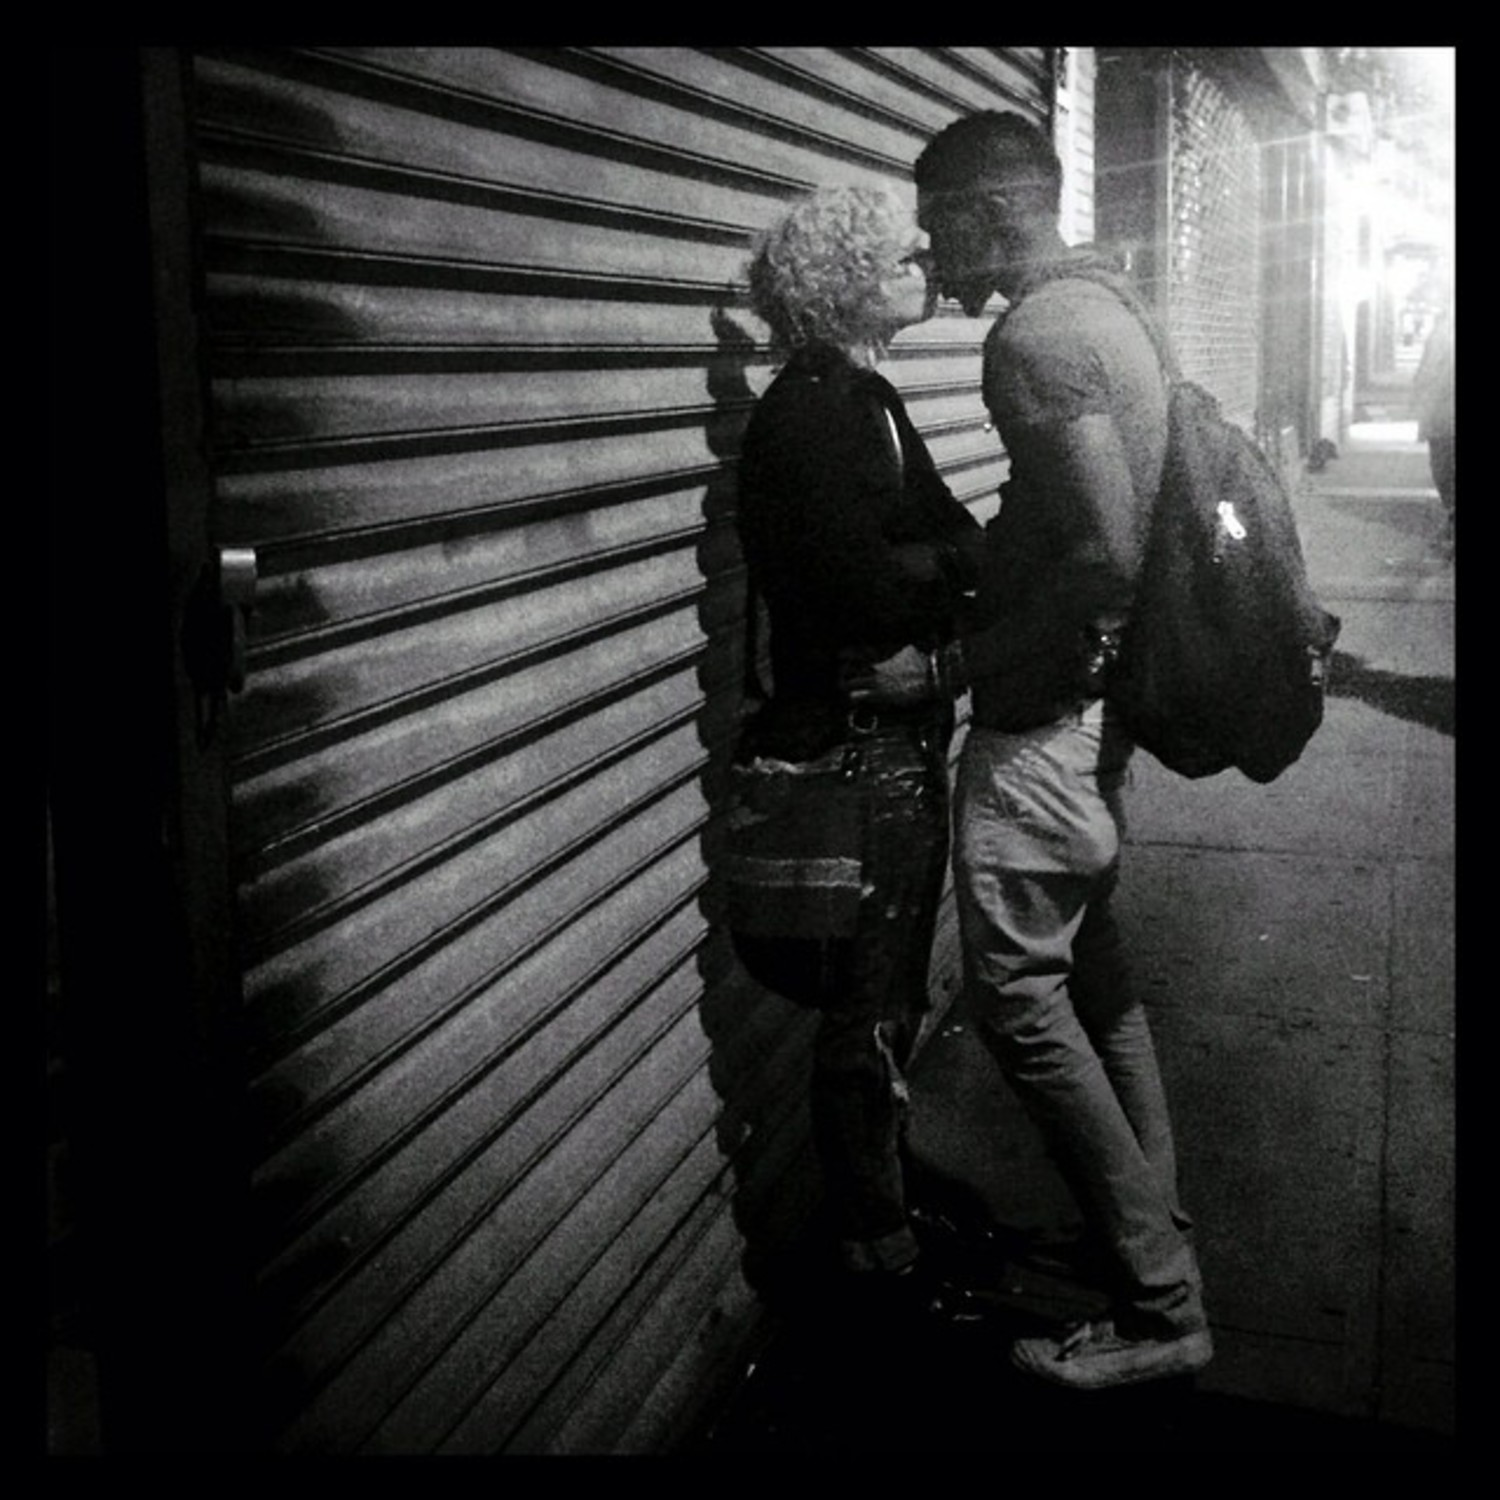 #younglove #brooklyn